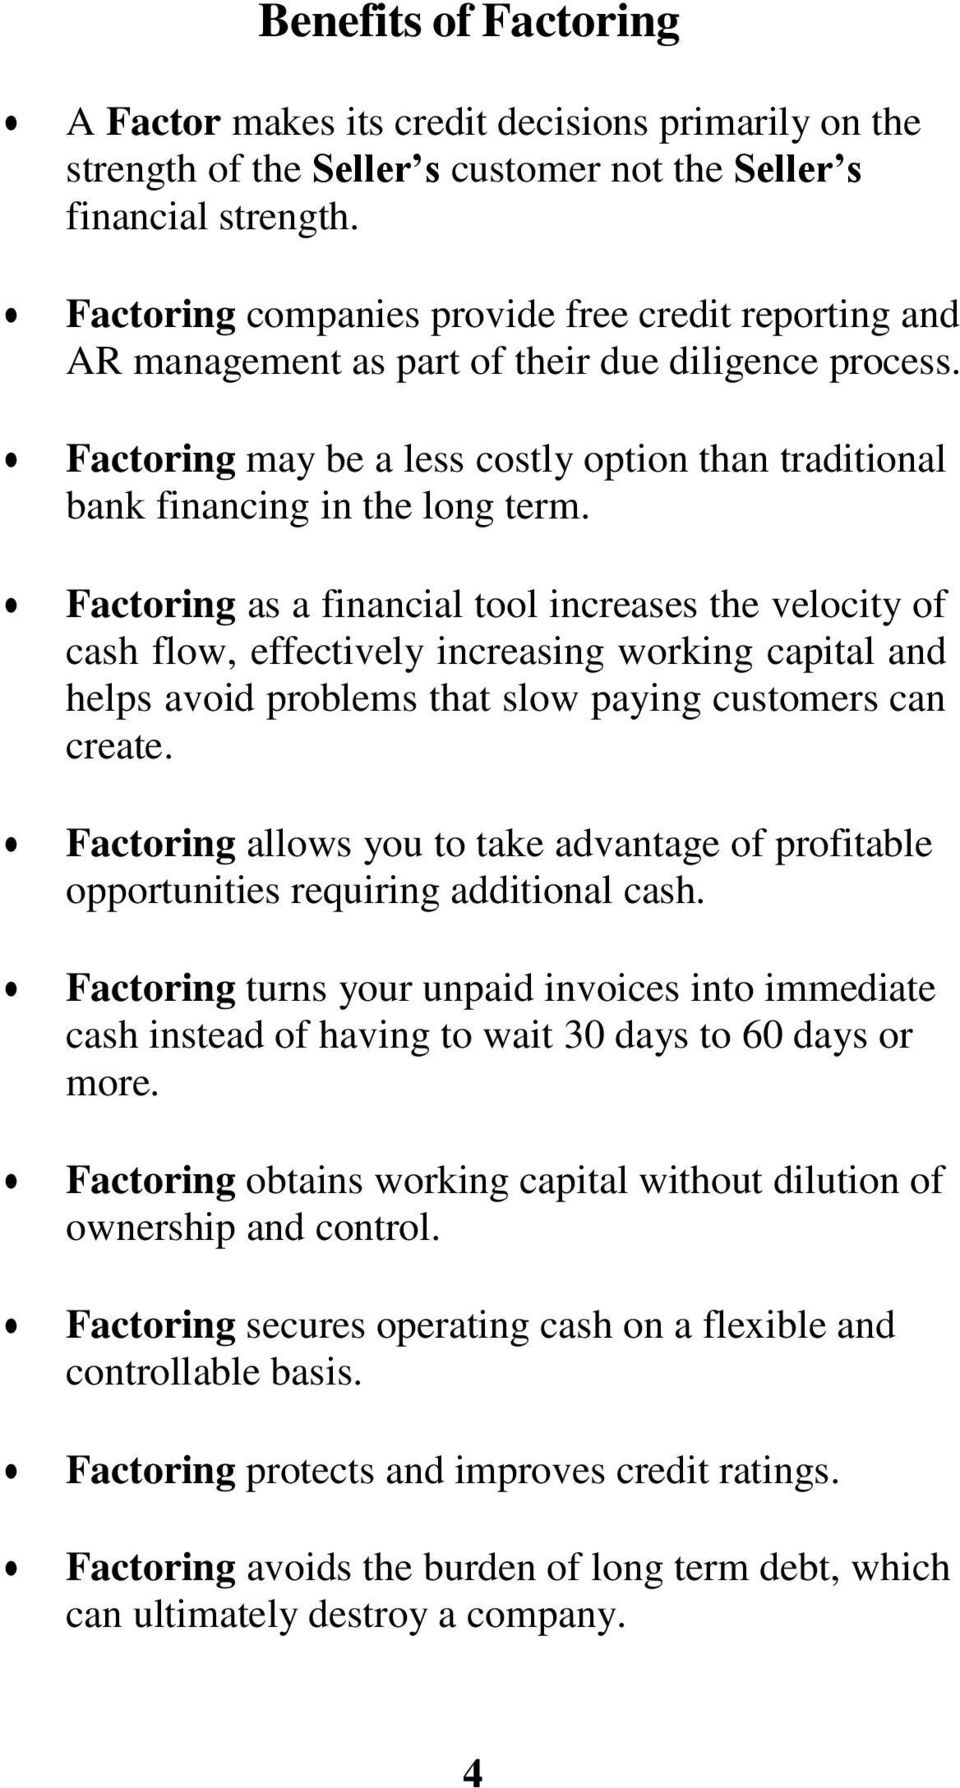 Factoring as a financial tool increases the velocity of cash flow, effectively increasing working capital and helps avoid problems that slow paying customers can create.